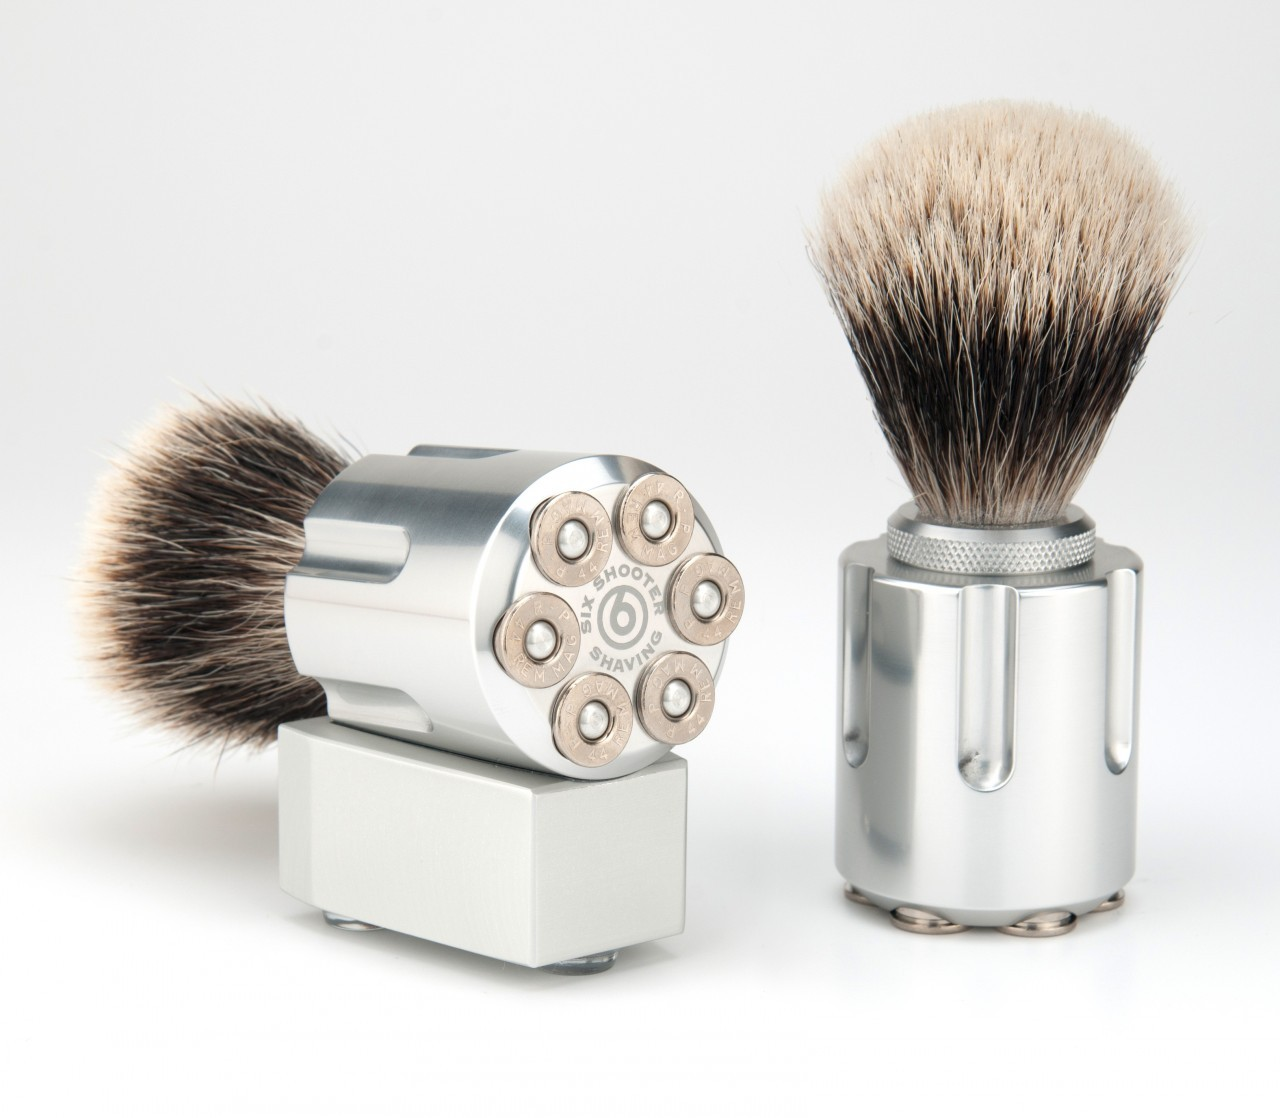 Stylish gadgets for: Shaving, Charging and Escaping Handcuffs | The Monsieur